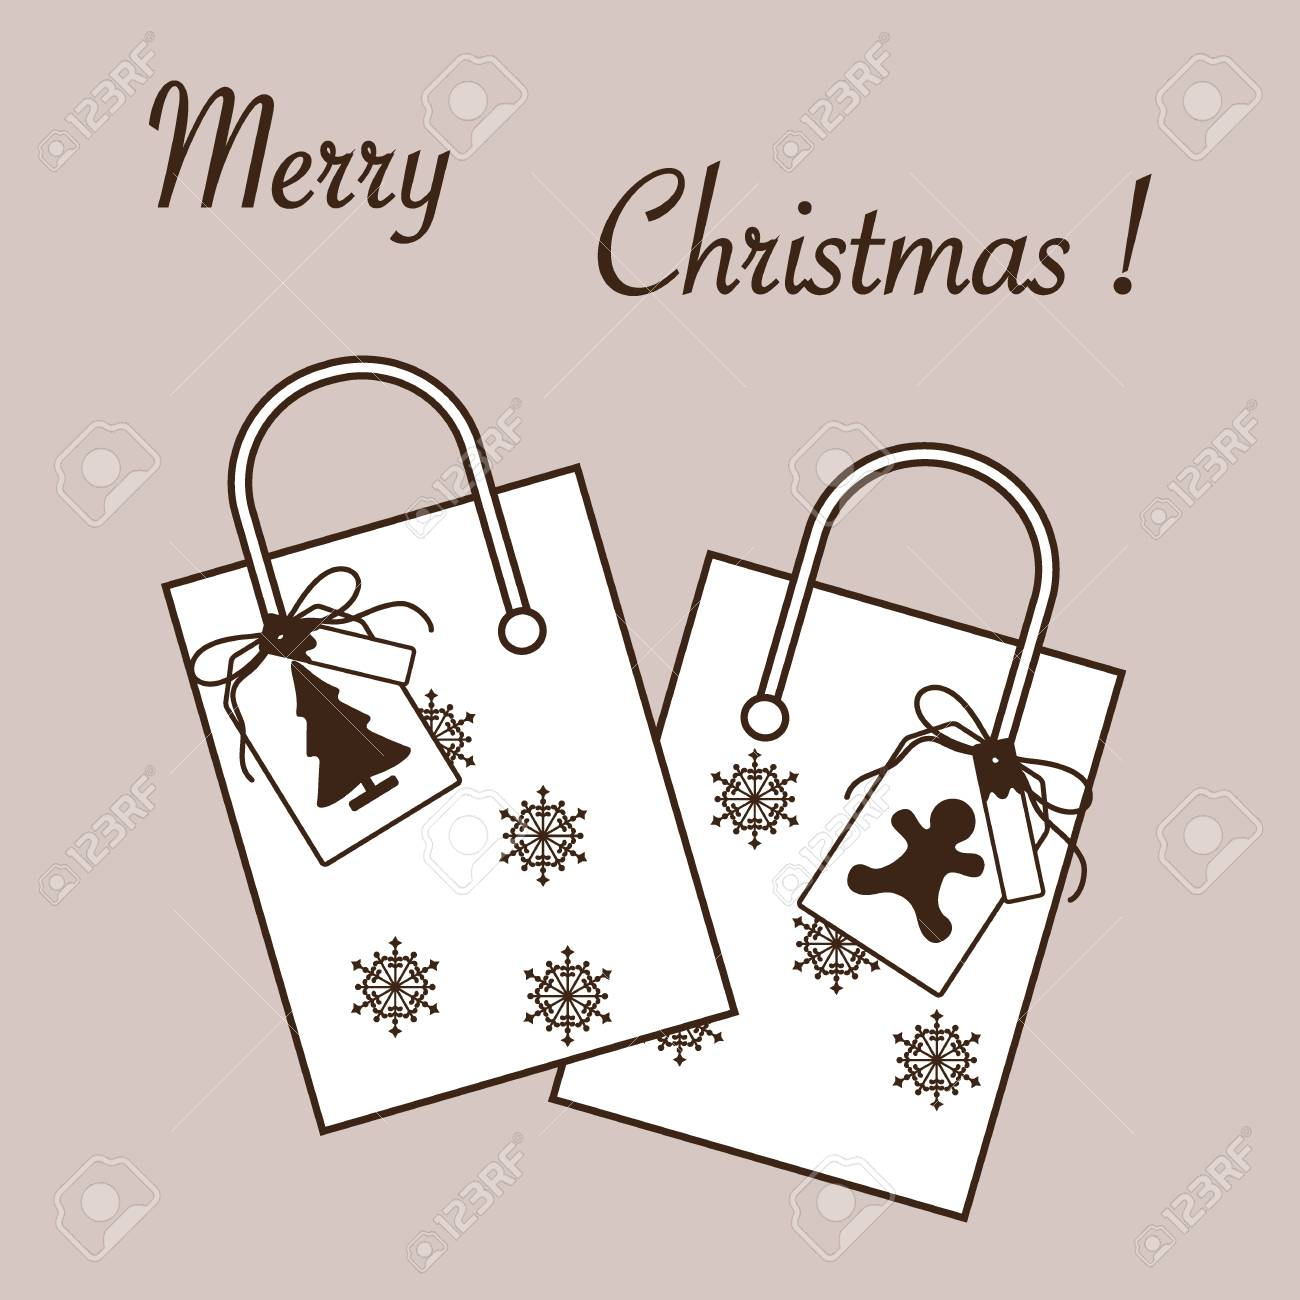 Cute Vector Illustration: Two Gift Bags With Snowflakes And Tags ...